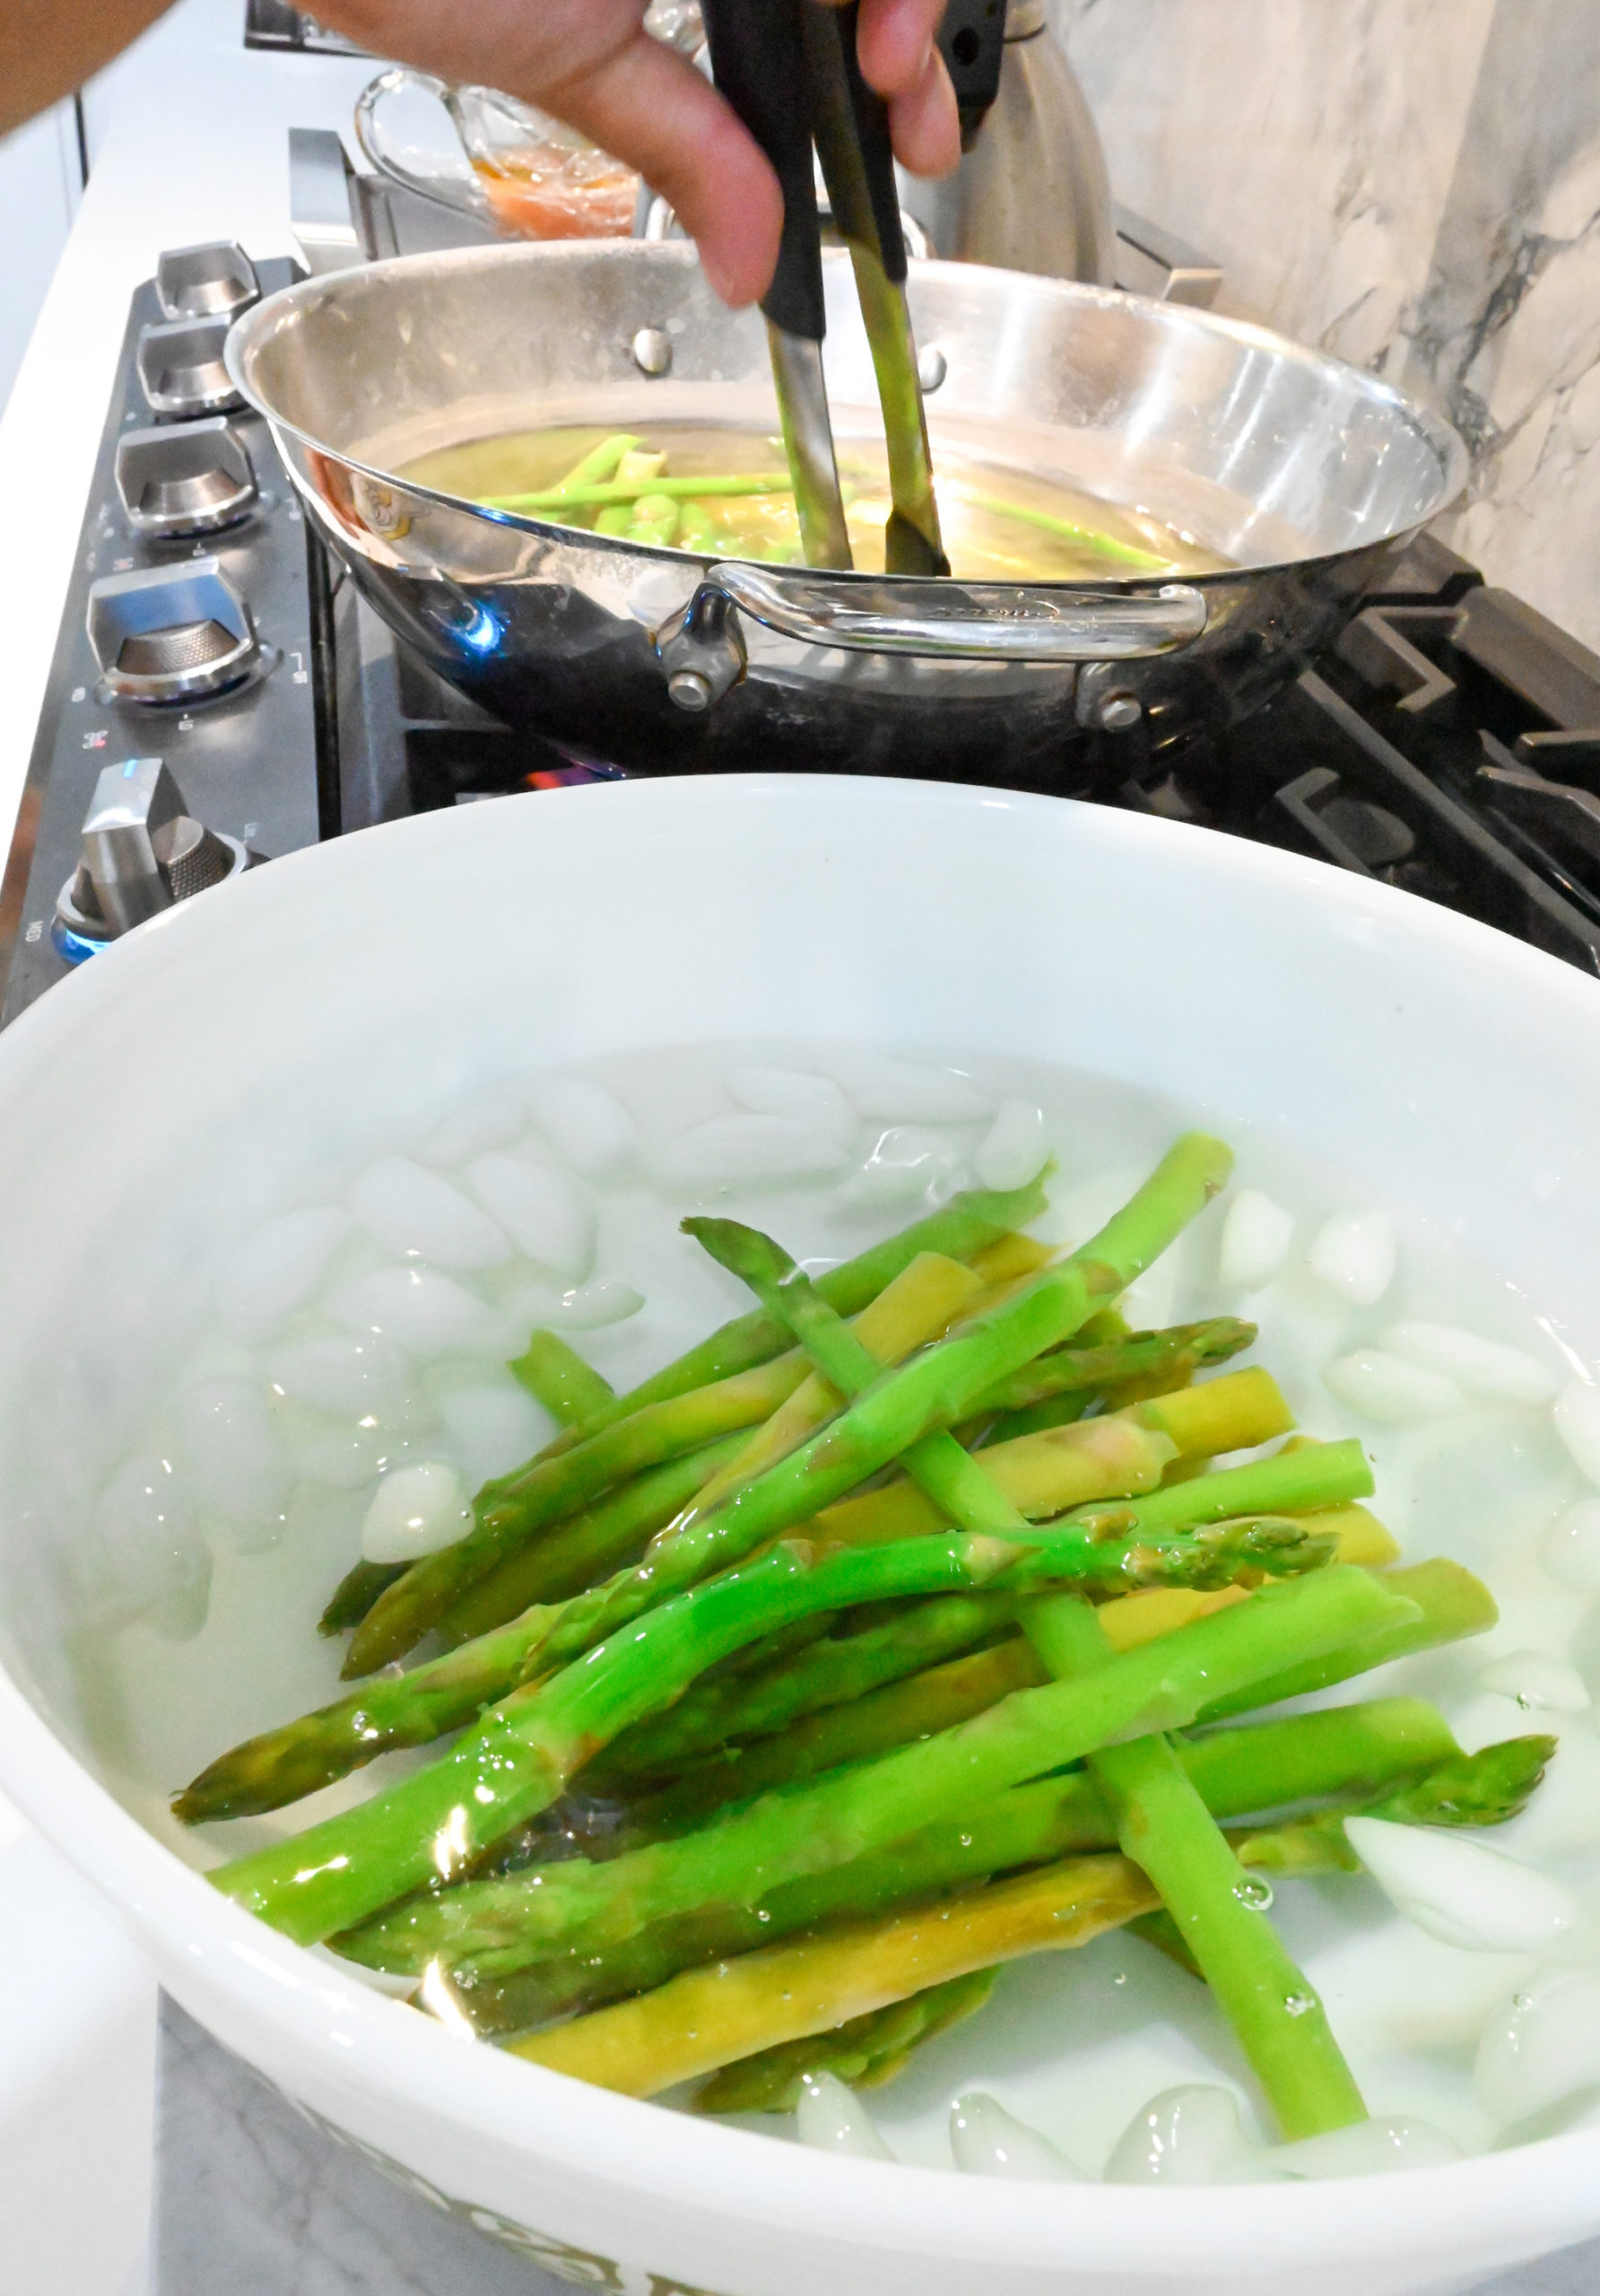 asparagus blanched and added to ice water